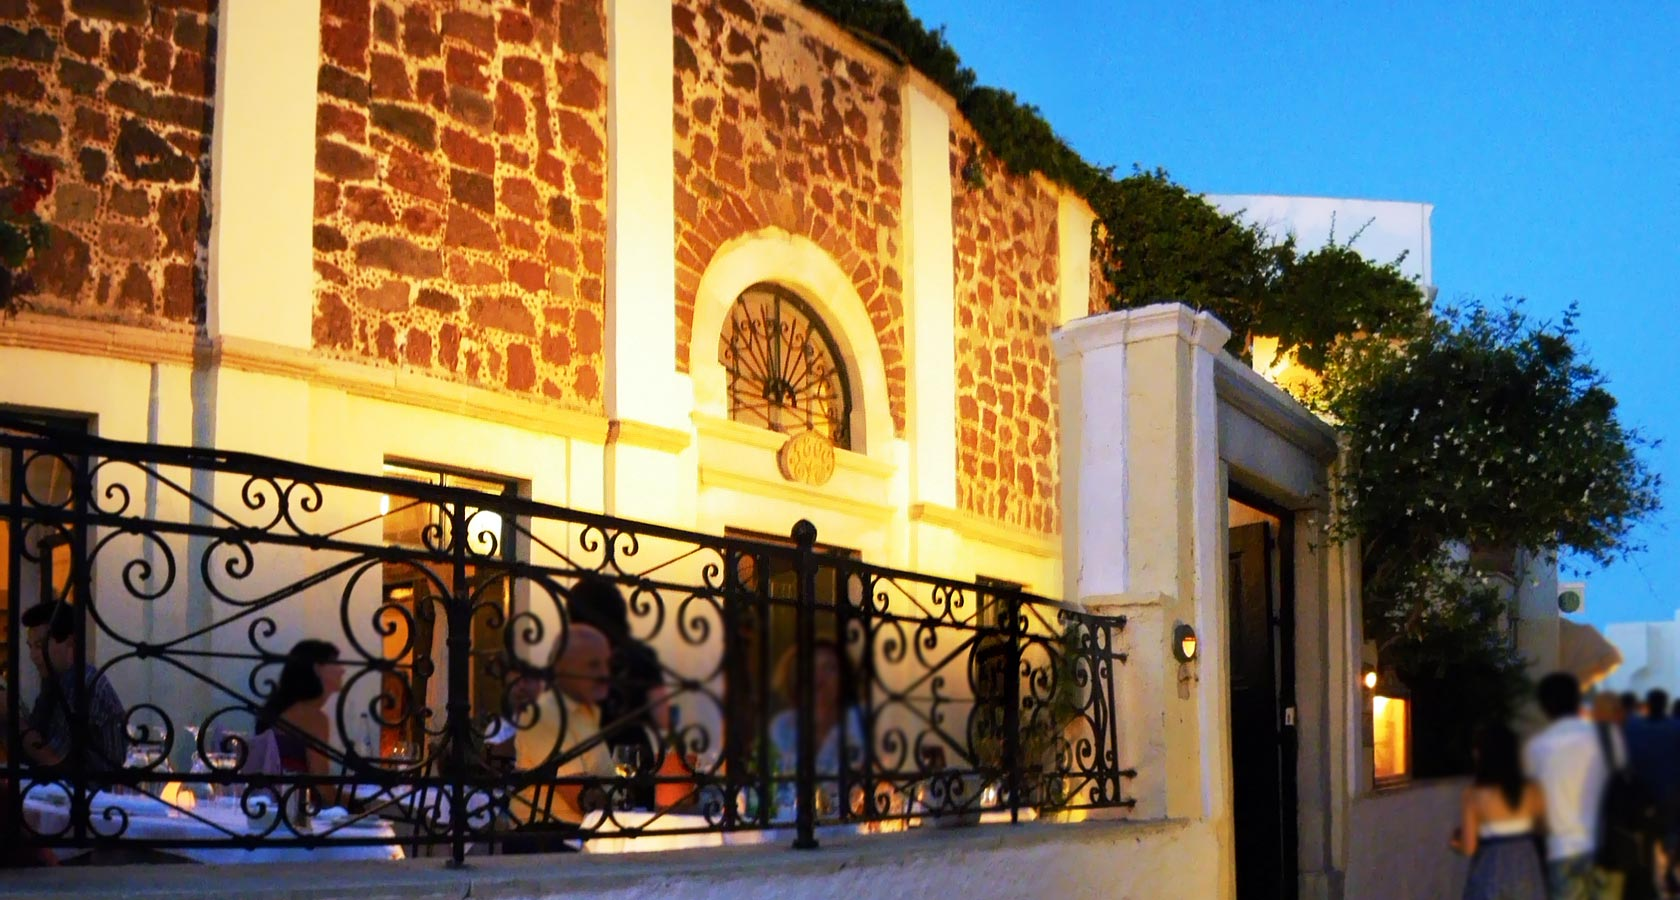 1800 Restaurant in Oia, one of the most famous restaurants in Santorini